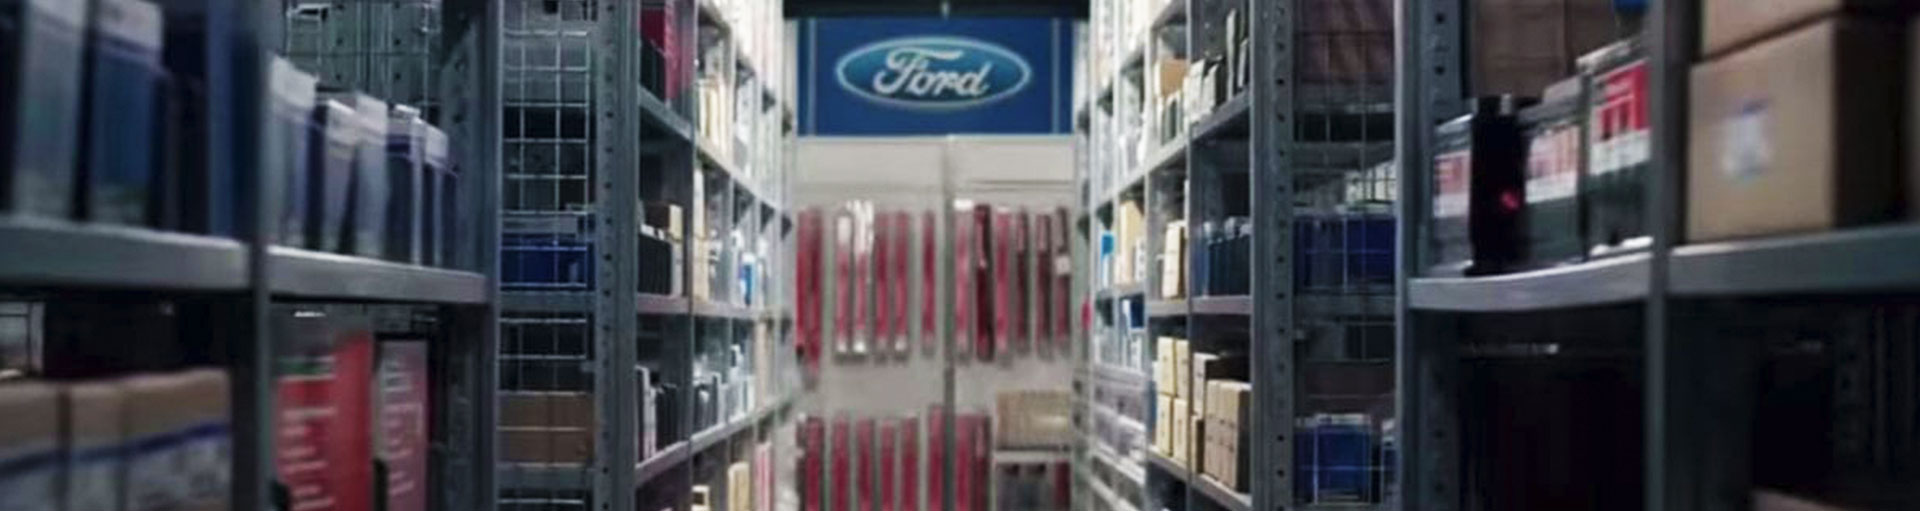 Bozard Ford Lincoln Parts Department